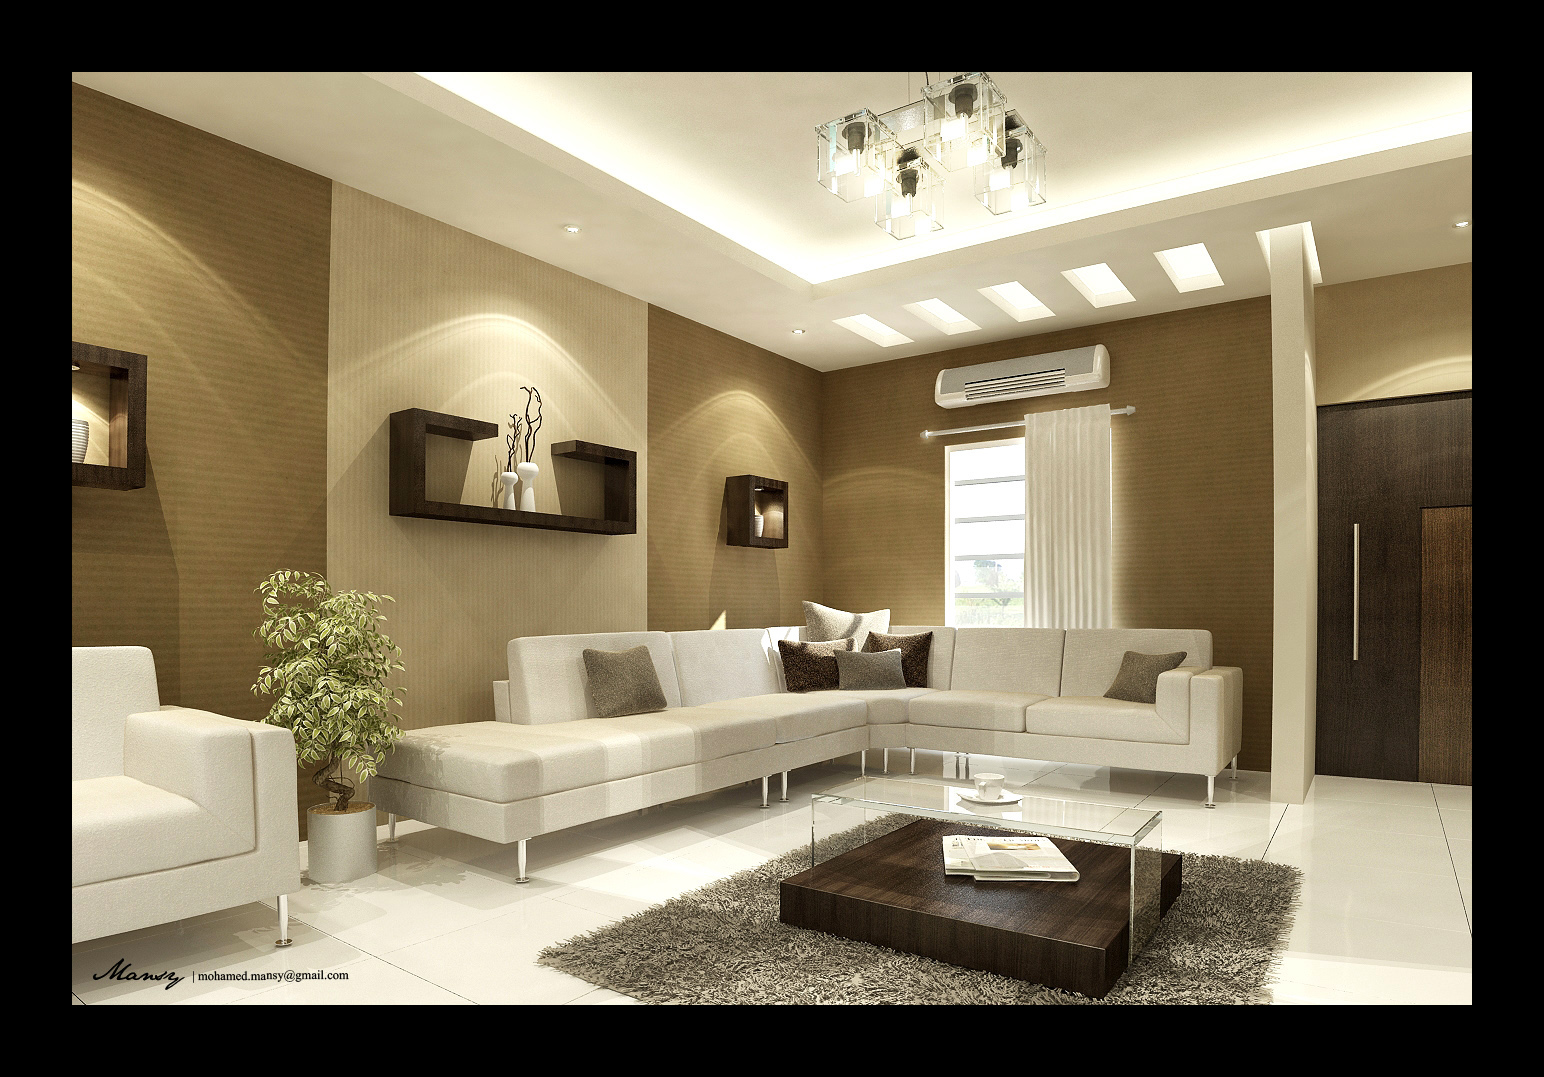 best interior design for living room utaibi house livingroom by mohamedmansy on deviantart 26612